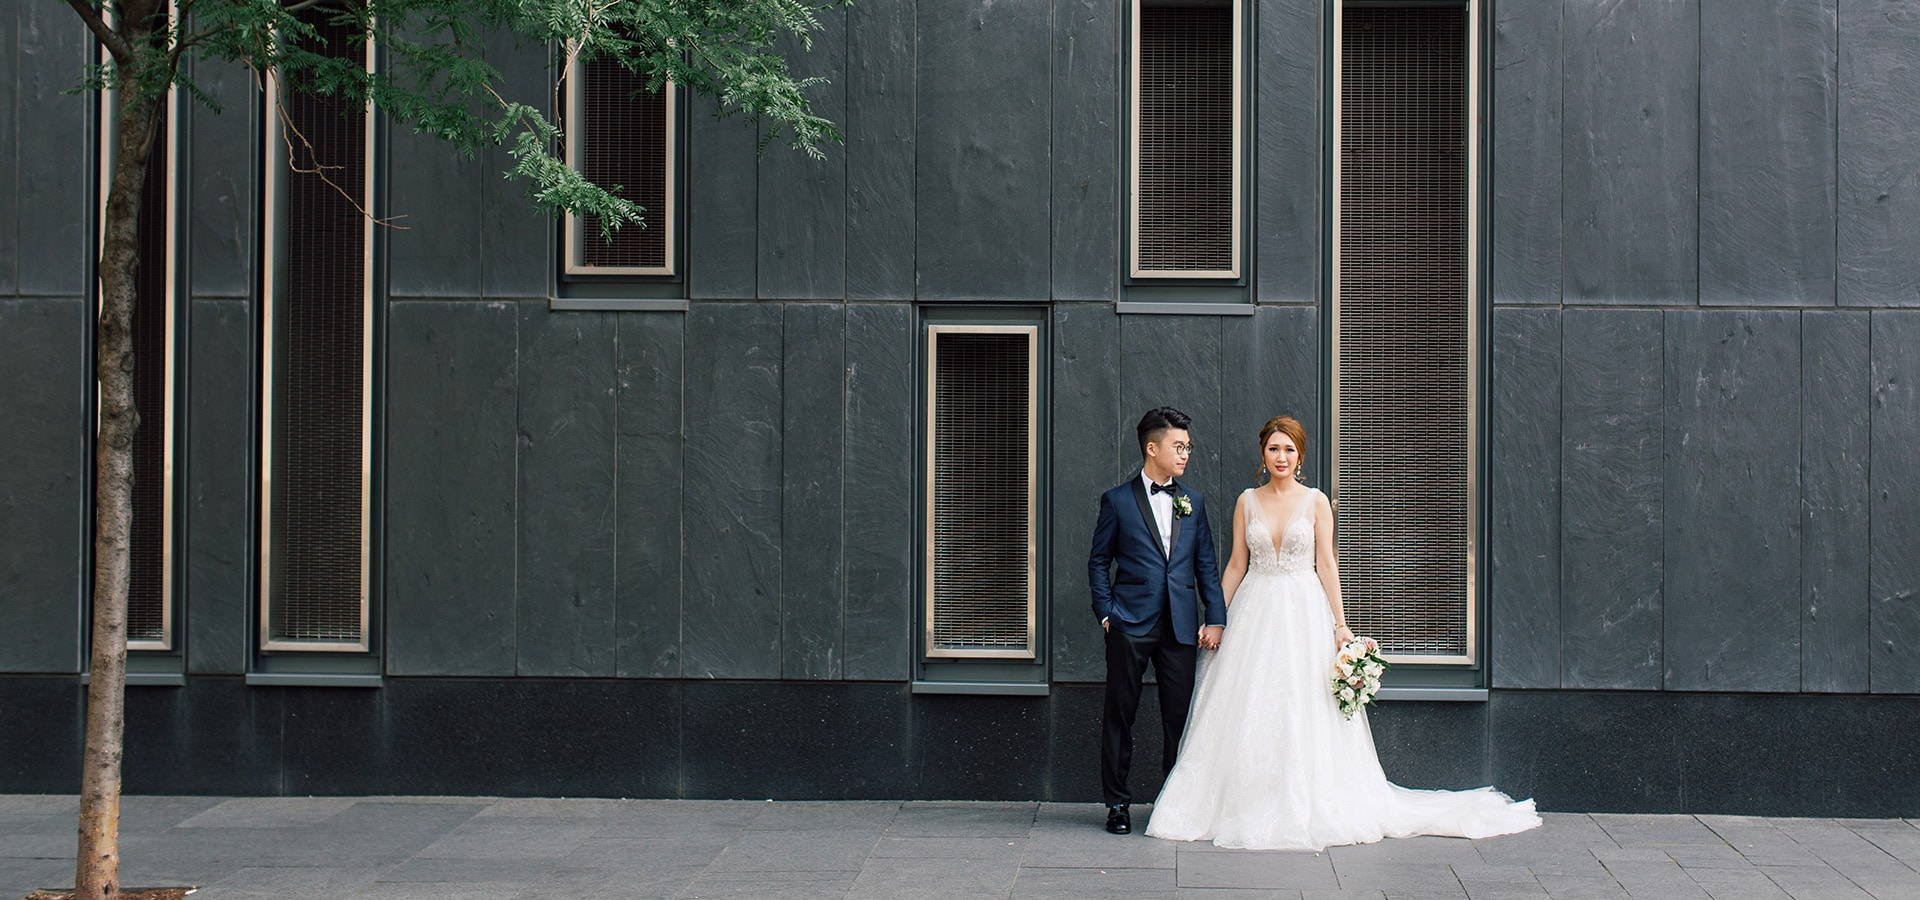 Hero image for Jacqueline and Kenneth's Fairy-tale Wedding at the Four Seasons